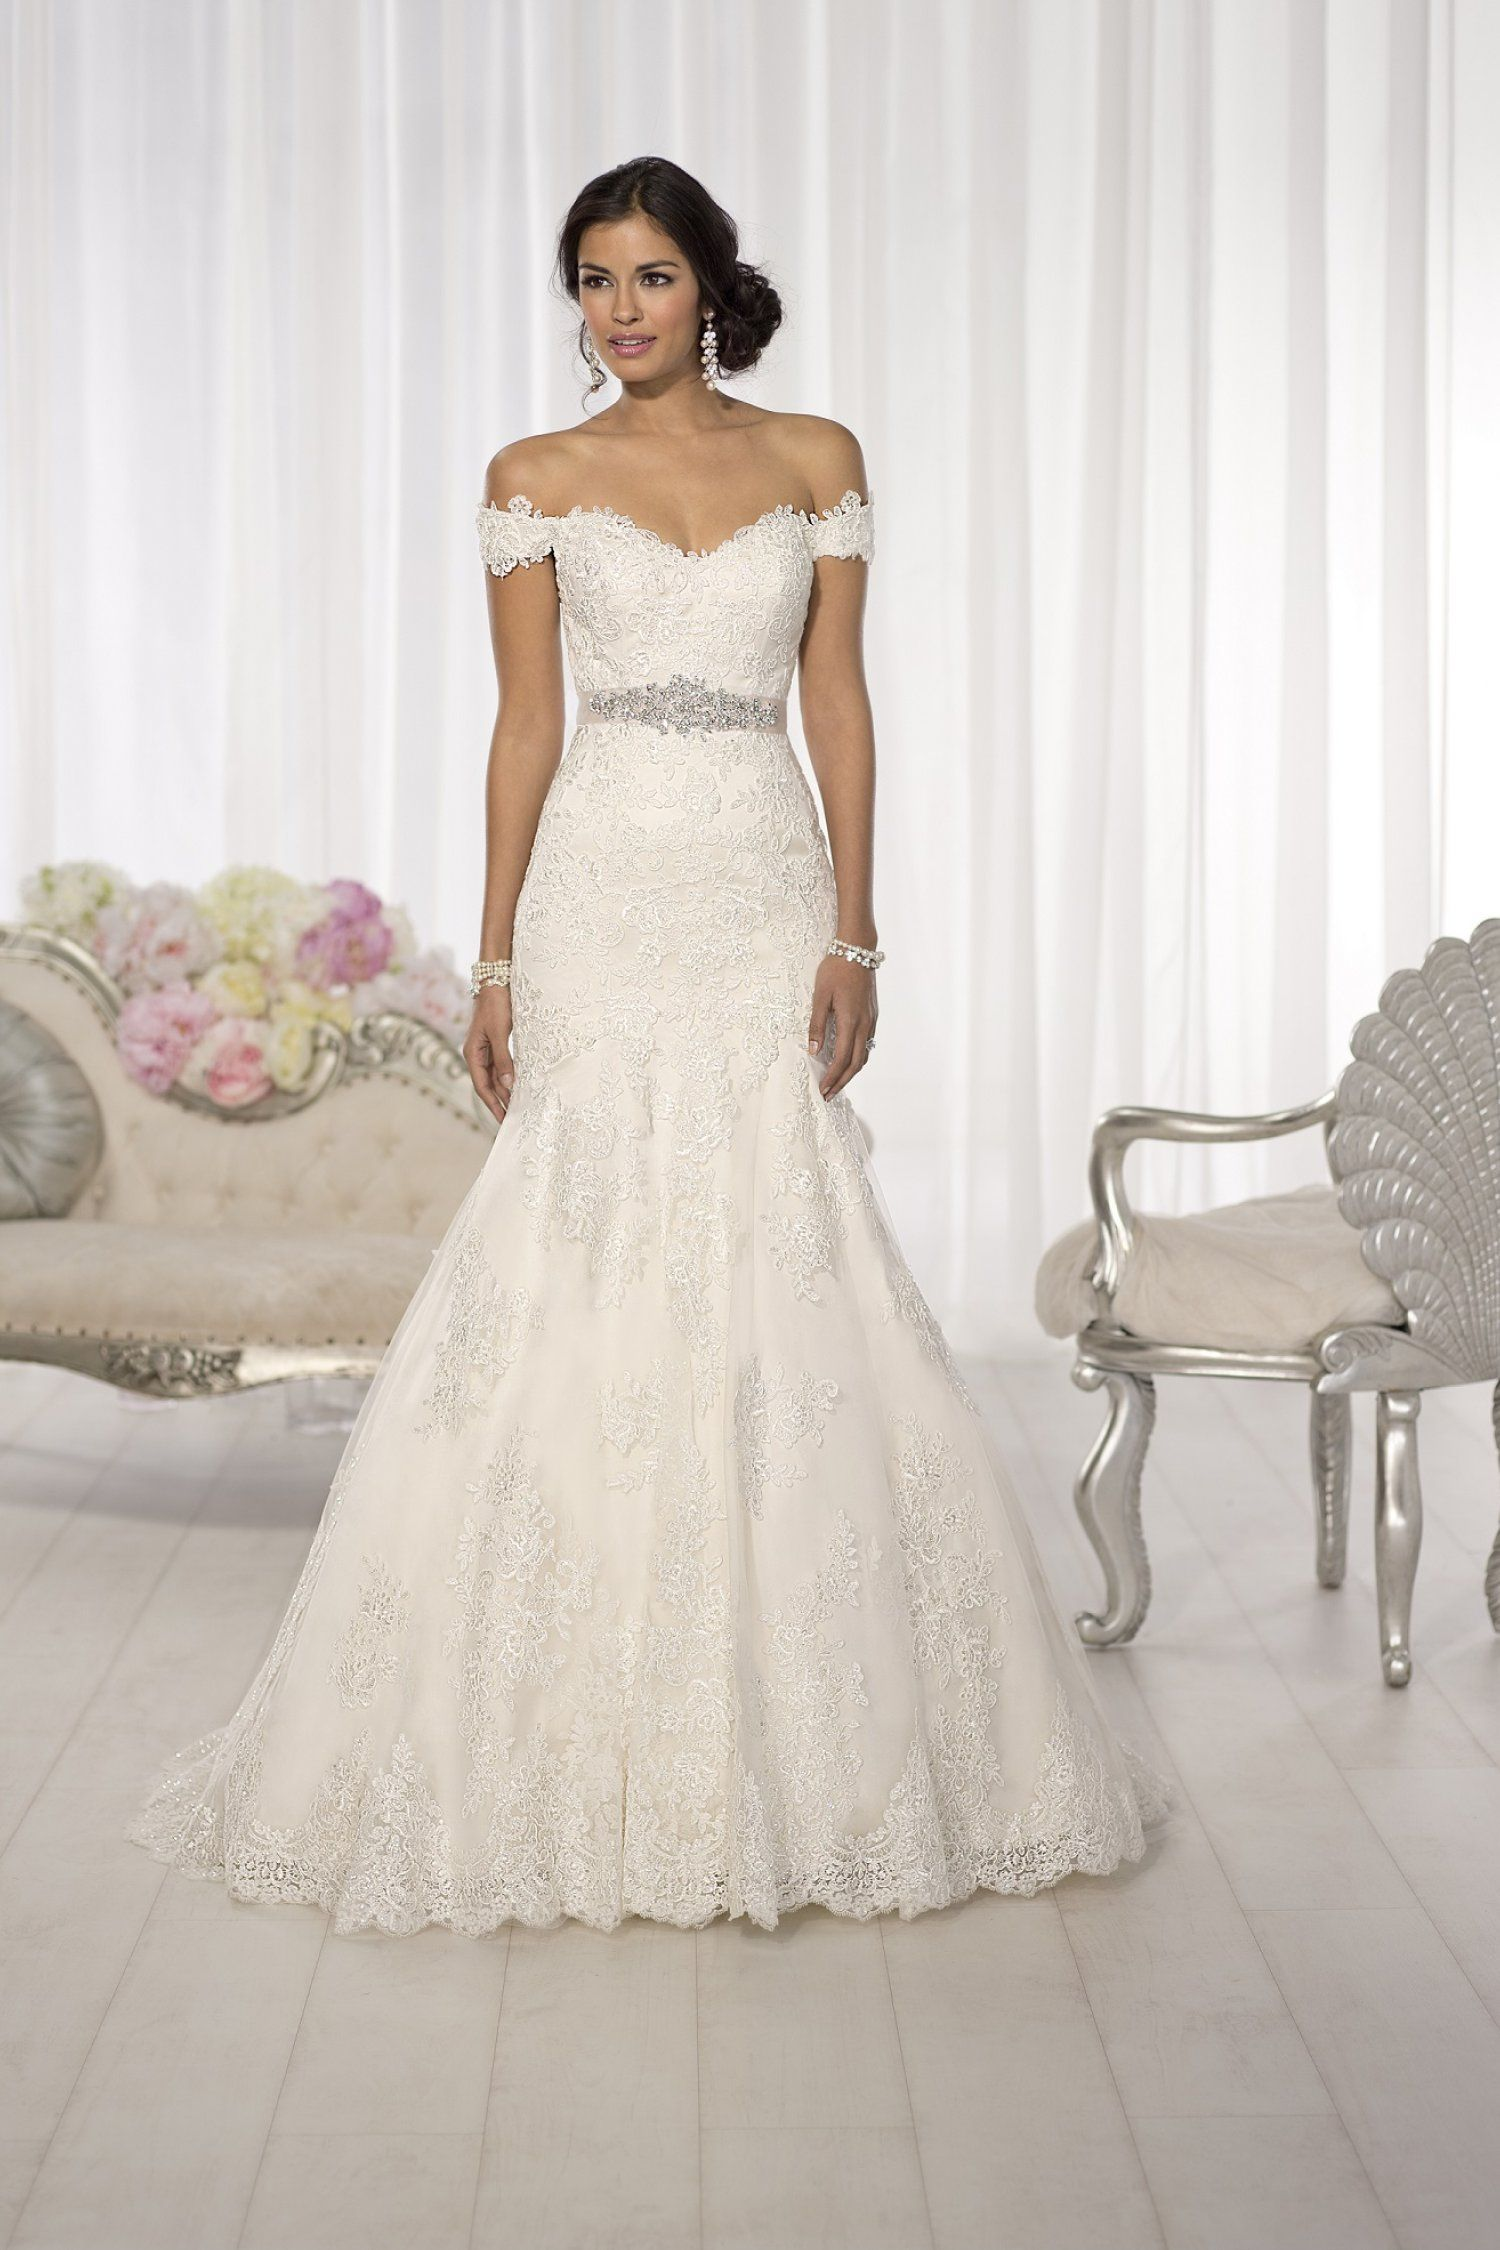 Essense of australia d size wedding dress pinterest